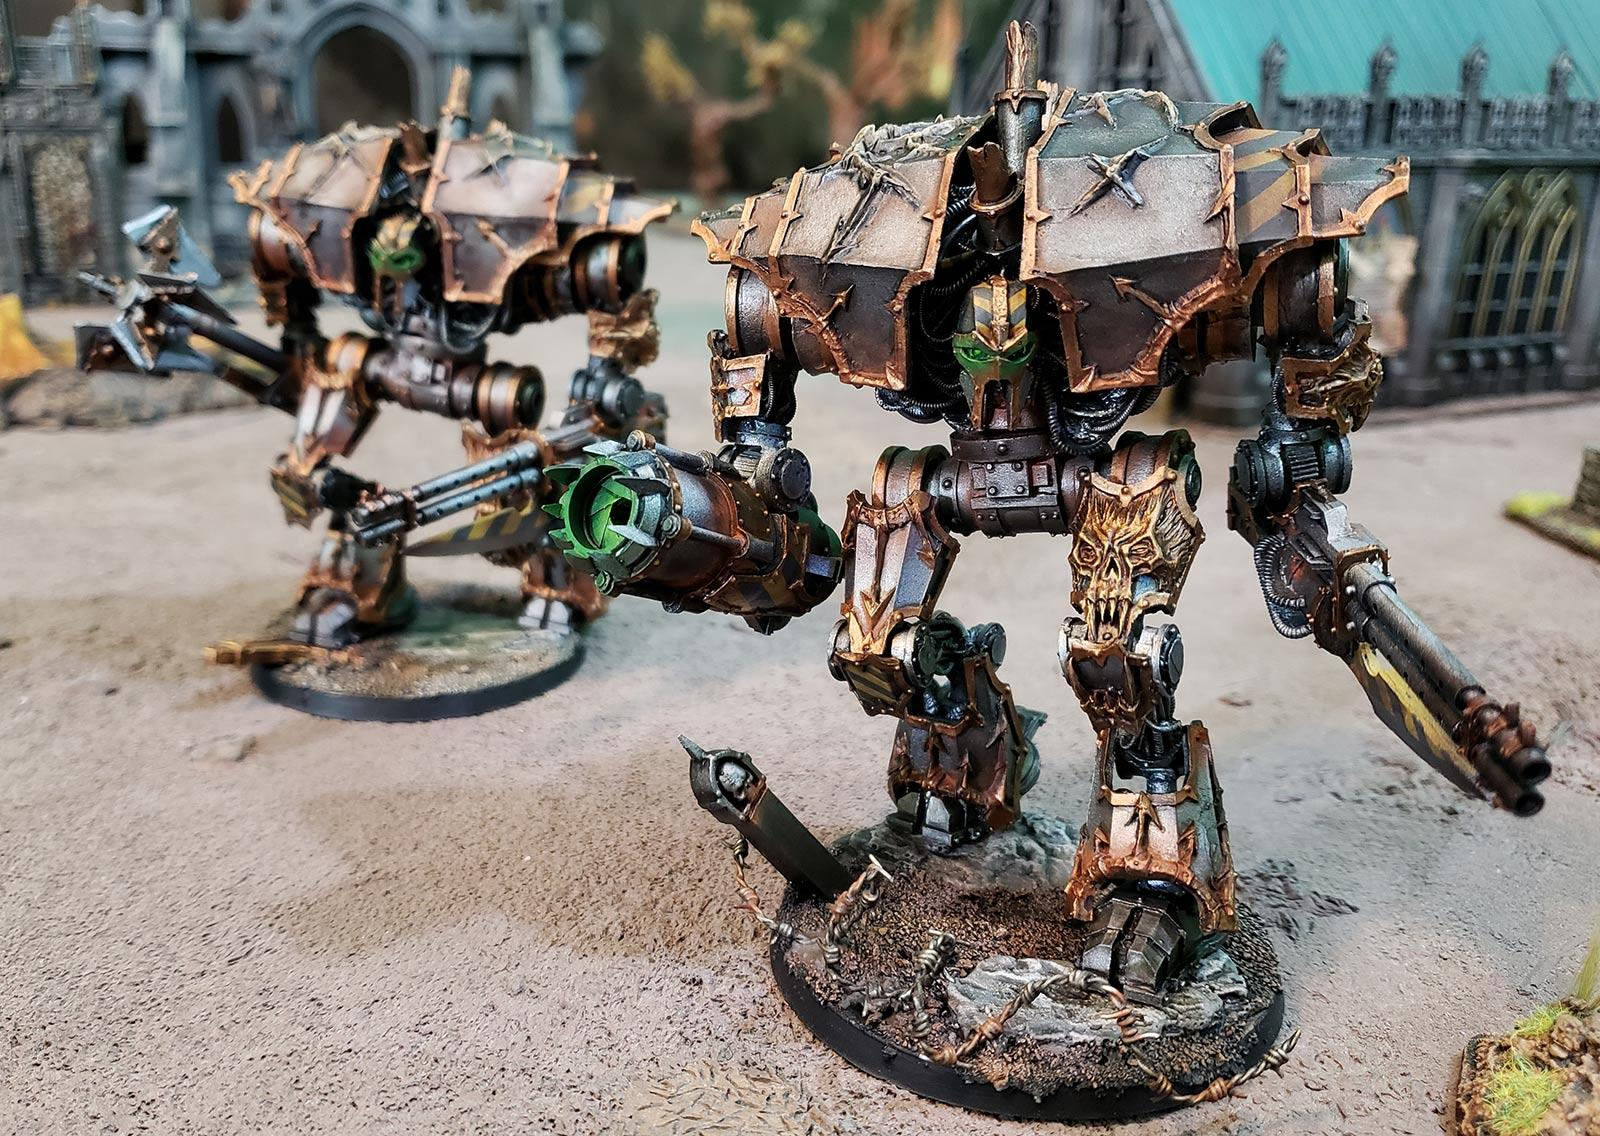 Butcher Cannon, Chaos, Chaos Space Marines, Daemon Engine, Demon Engine, Forge World, Iron Warriors, Siege Claw, Siege Claws, Soul Burner Petard